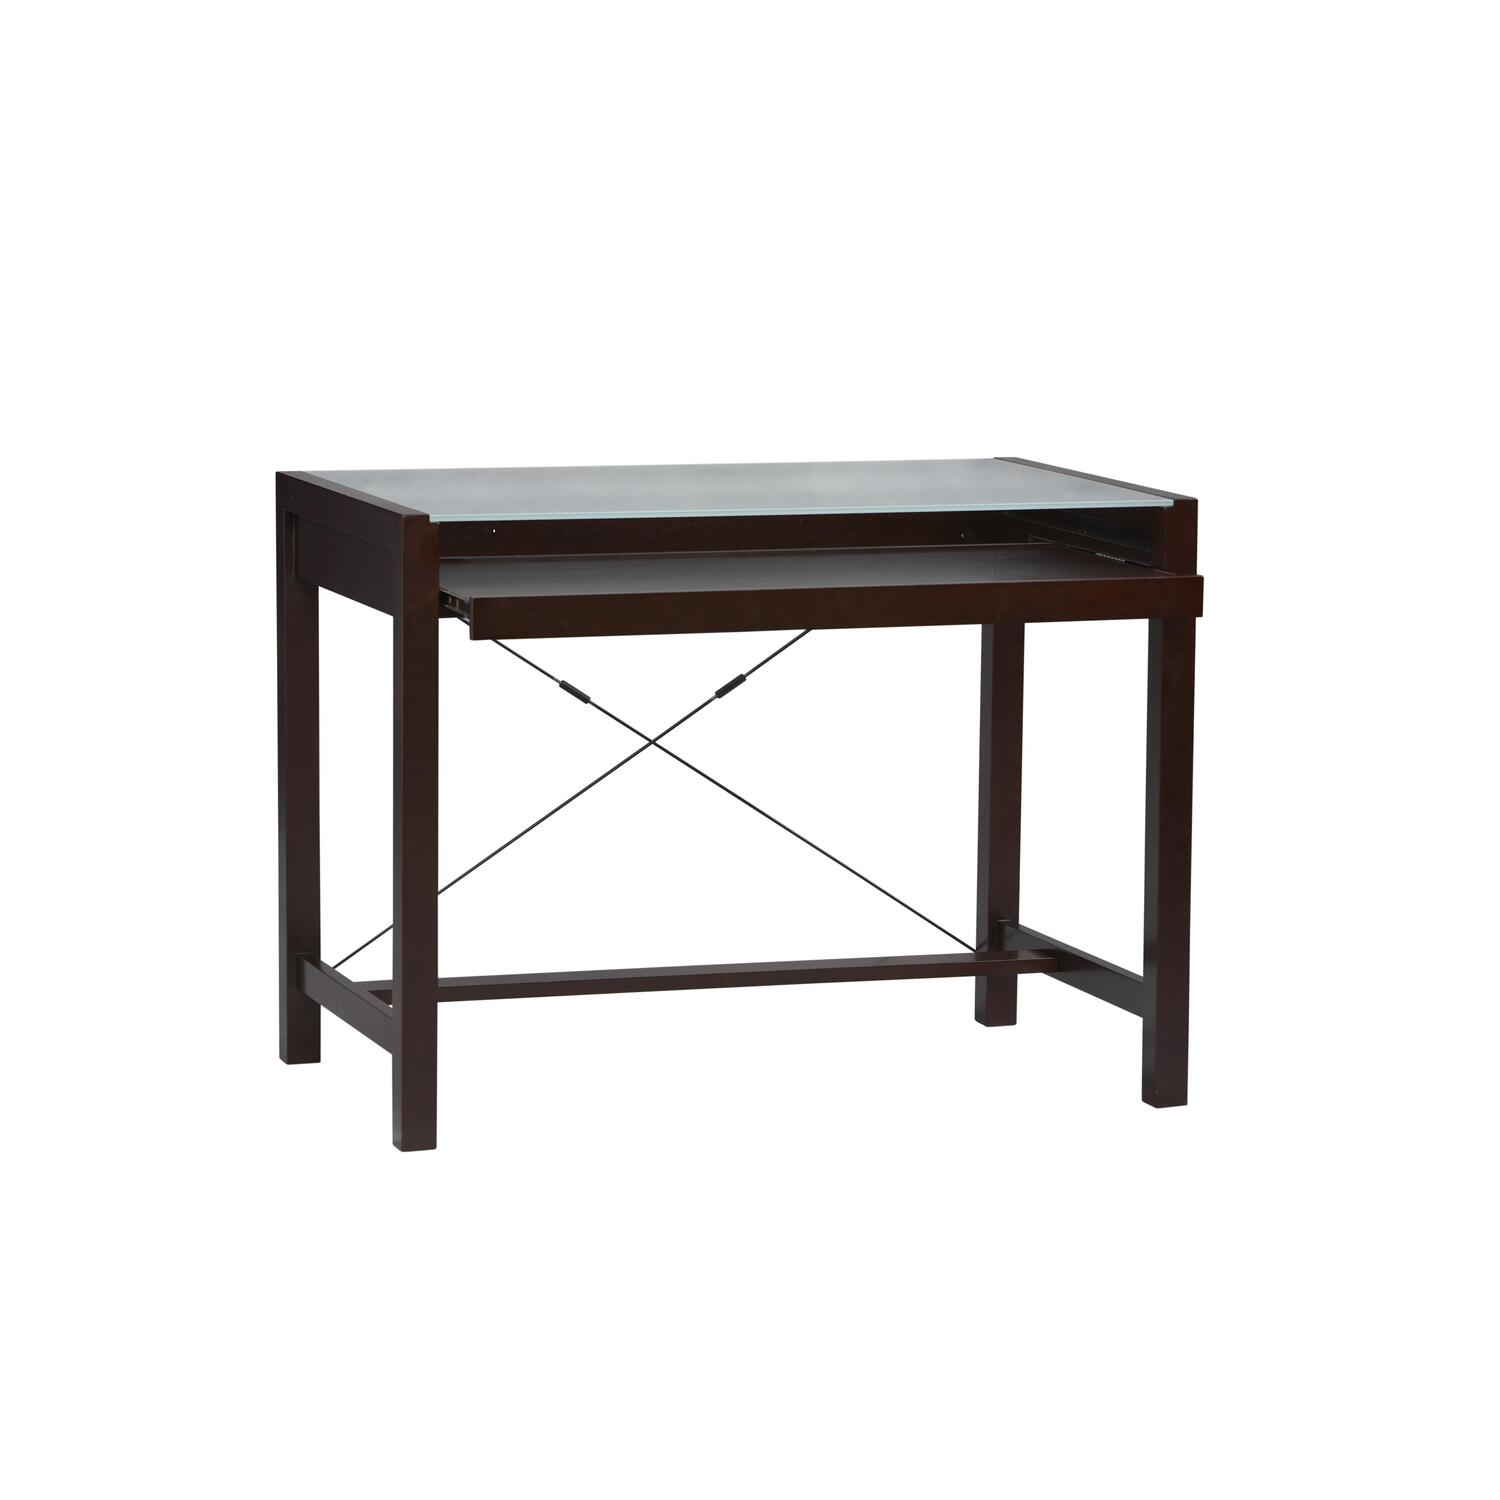 Linon Metro Glass Computer Desk in Espresso by OJ Commerce 74007ESP-01